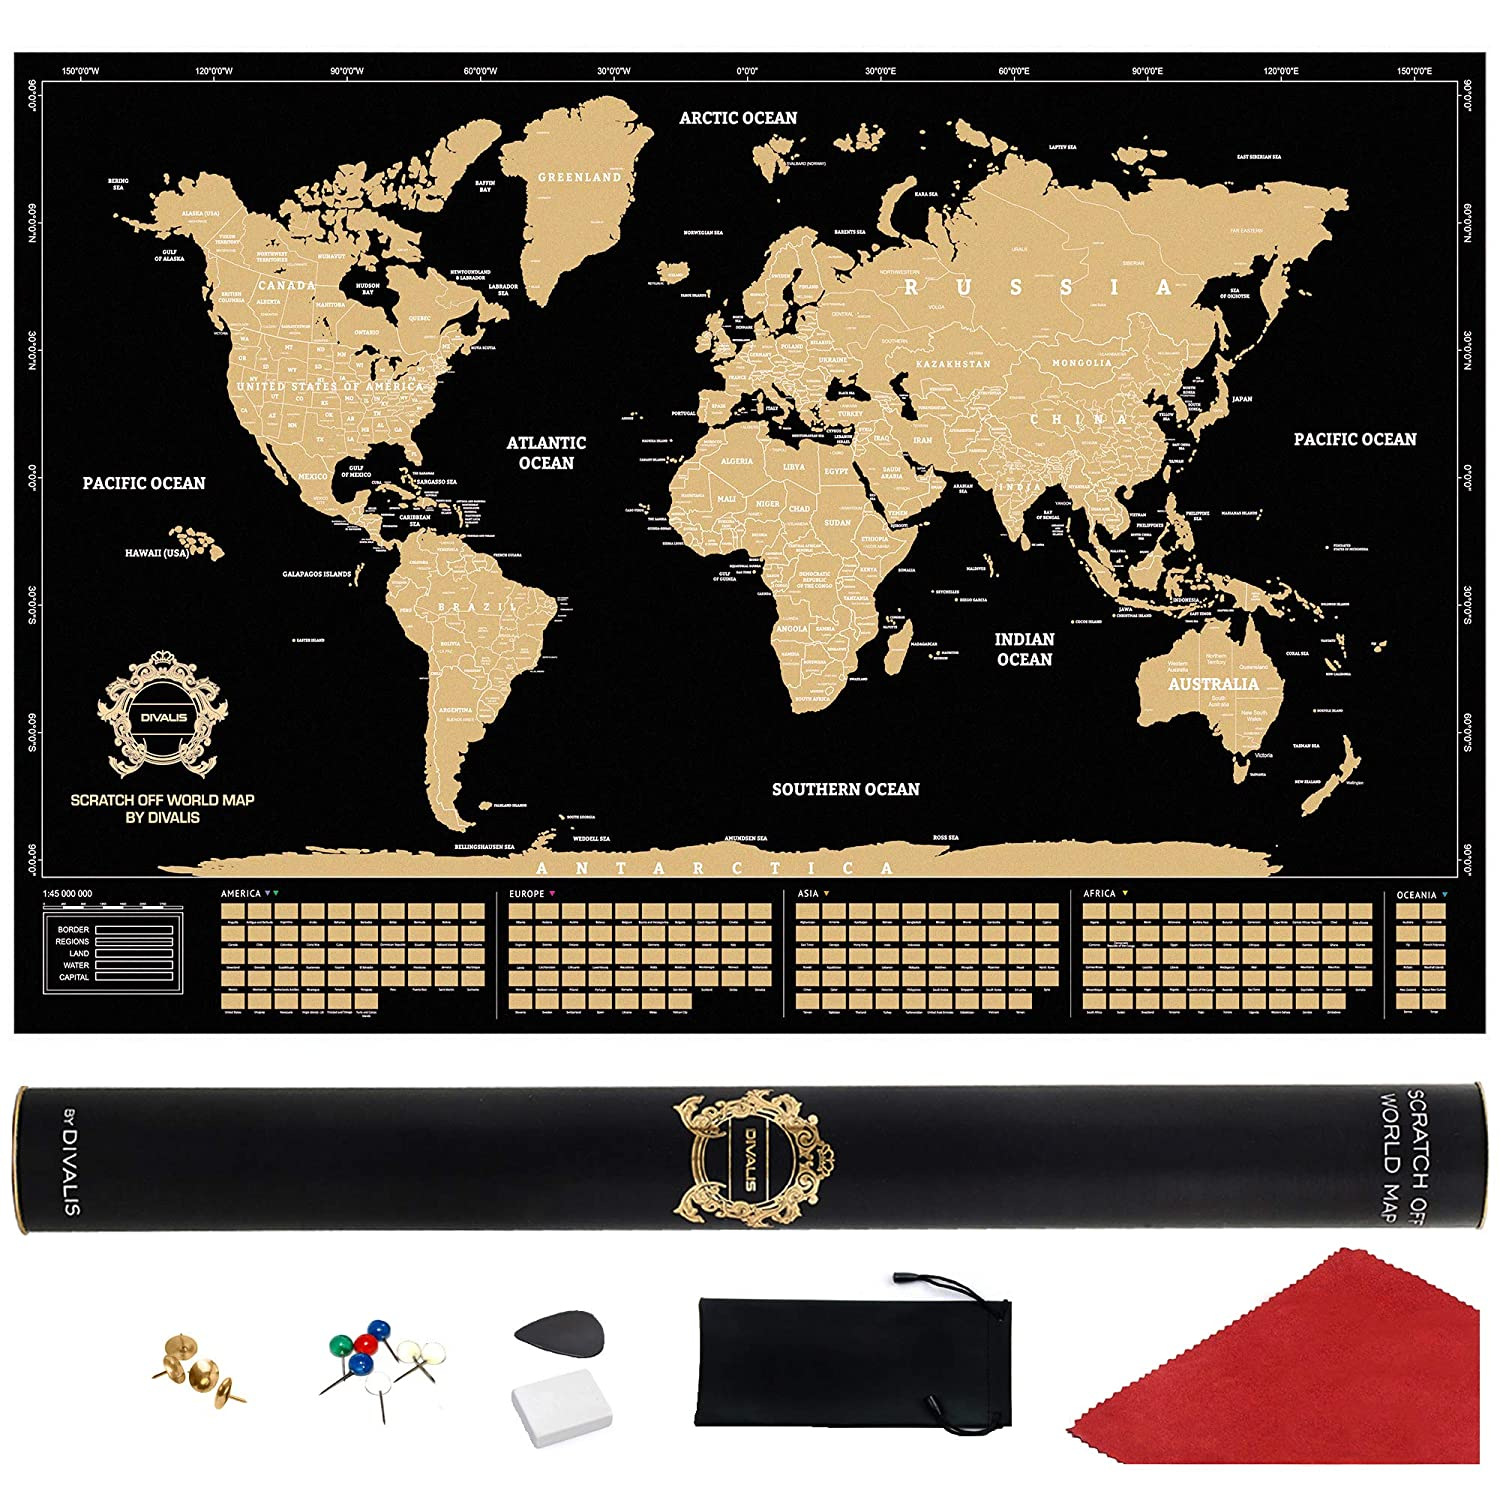 Black World Map Poster.Amazon Com Scratch Off World Map Extra Large Black And Gold